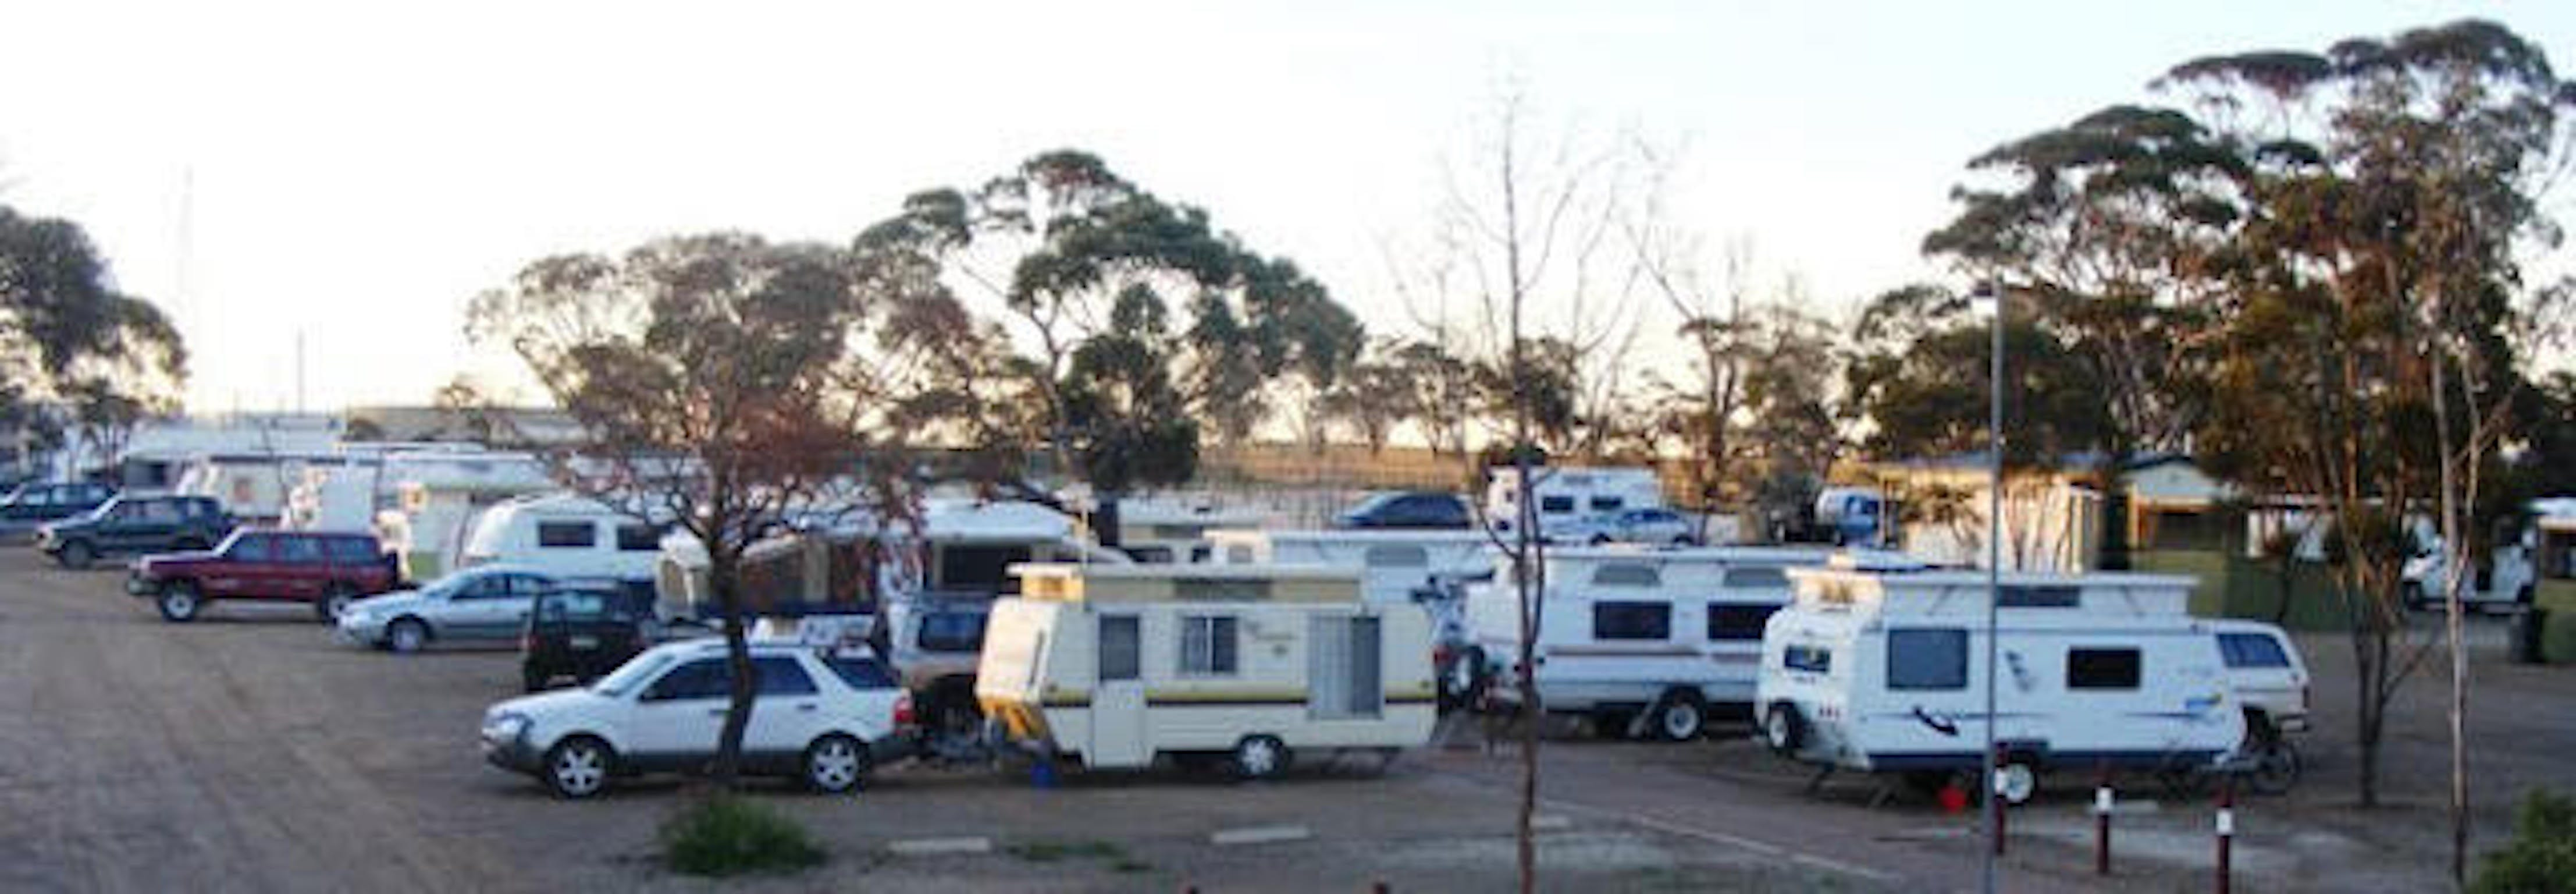 Woomera Traveller's Village and Caravan Park - Accommodation in Surfers Paradise